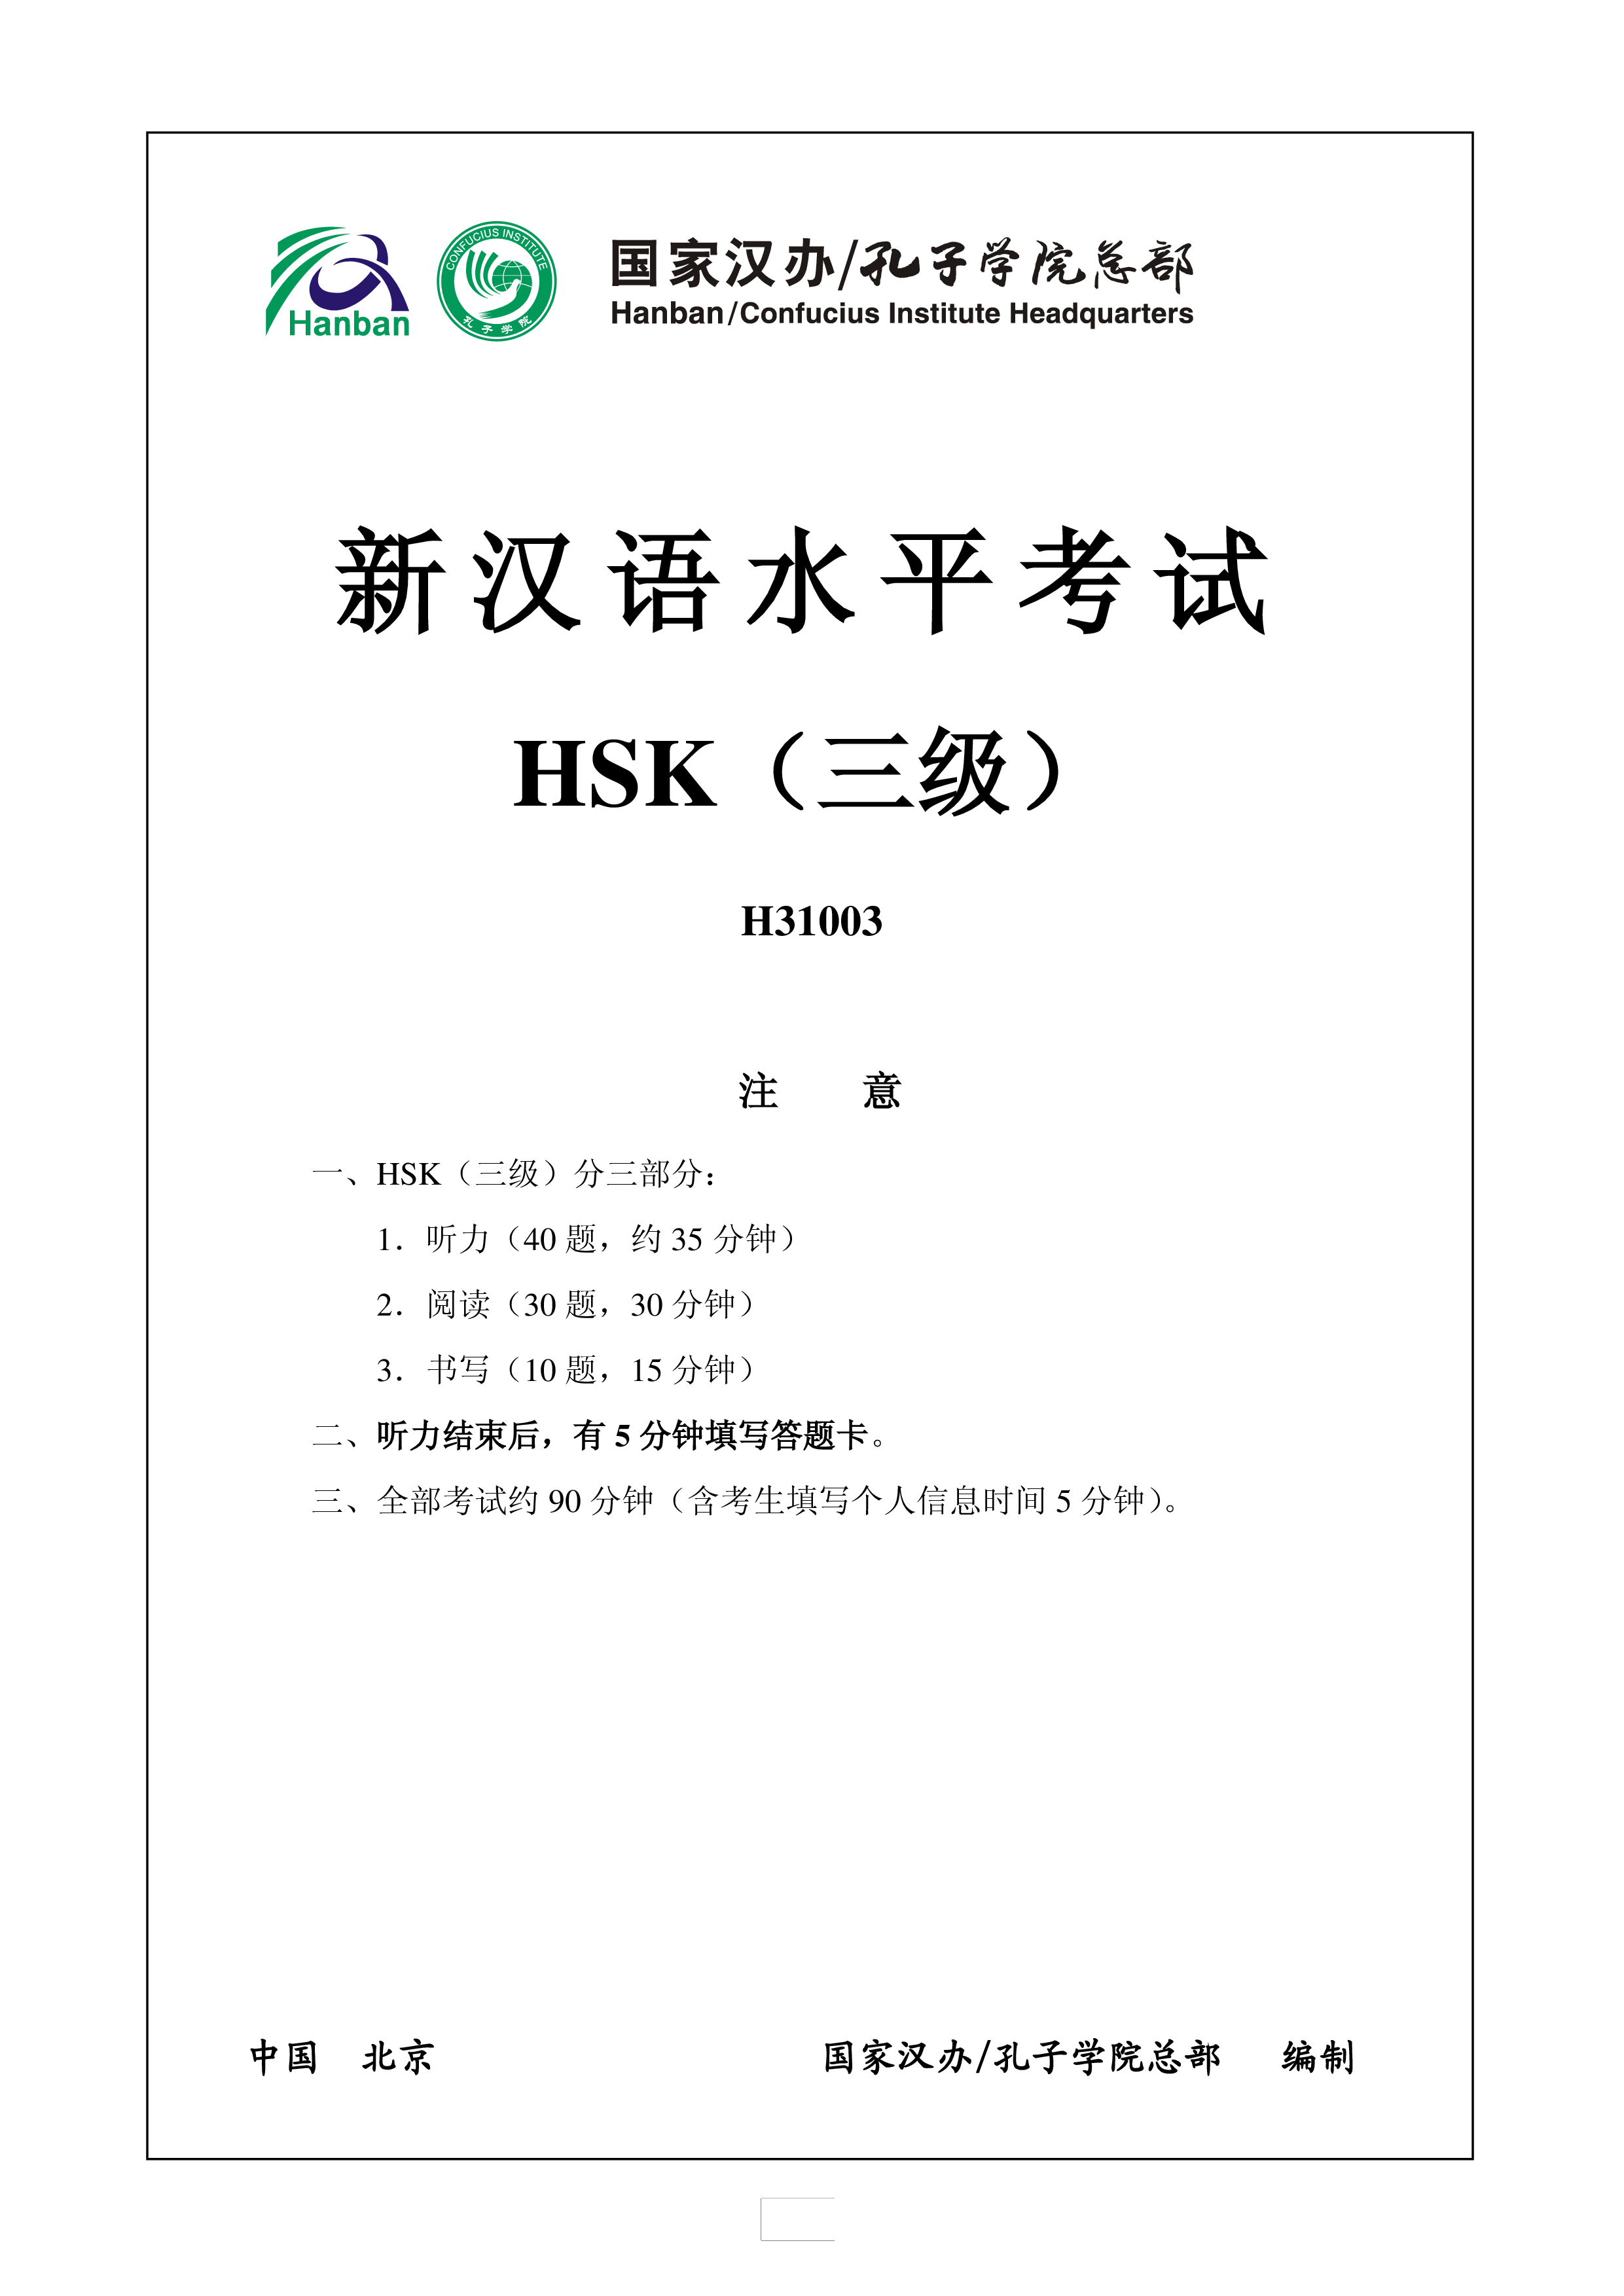 HSK3 Chinese Exam including Answers # HSK3 H31003 main image